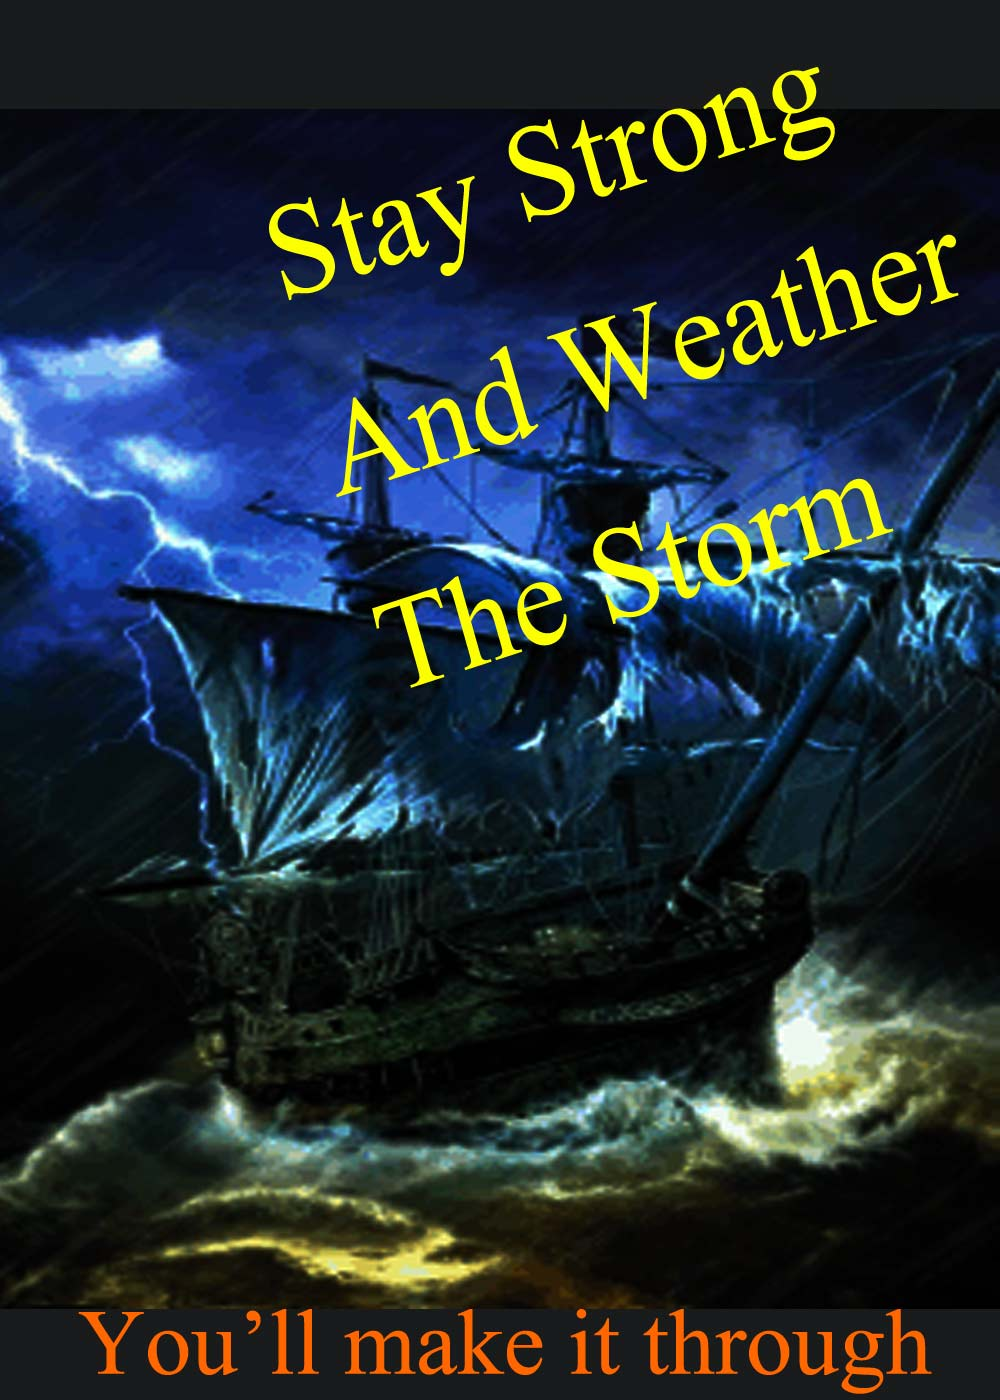 Stay Strong And Weather The Storm You'll Make It Through